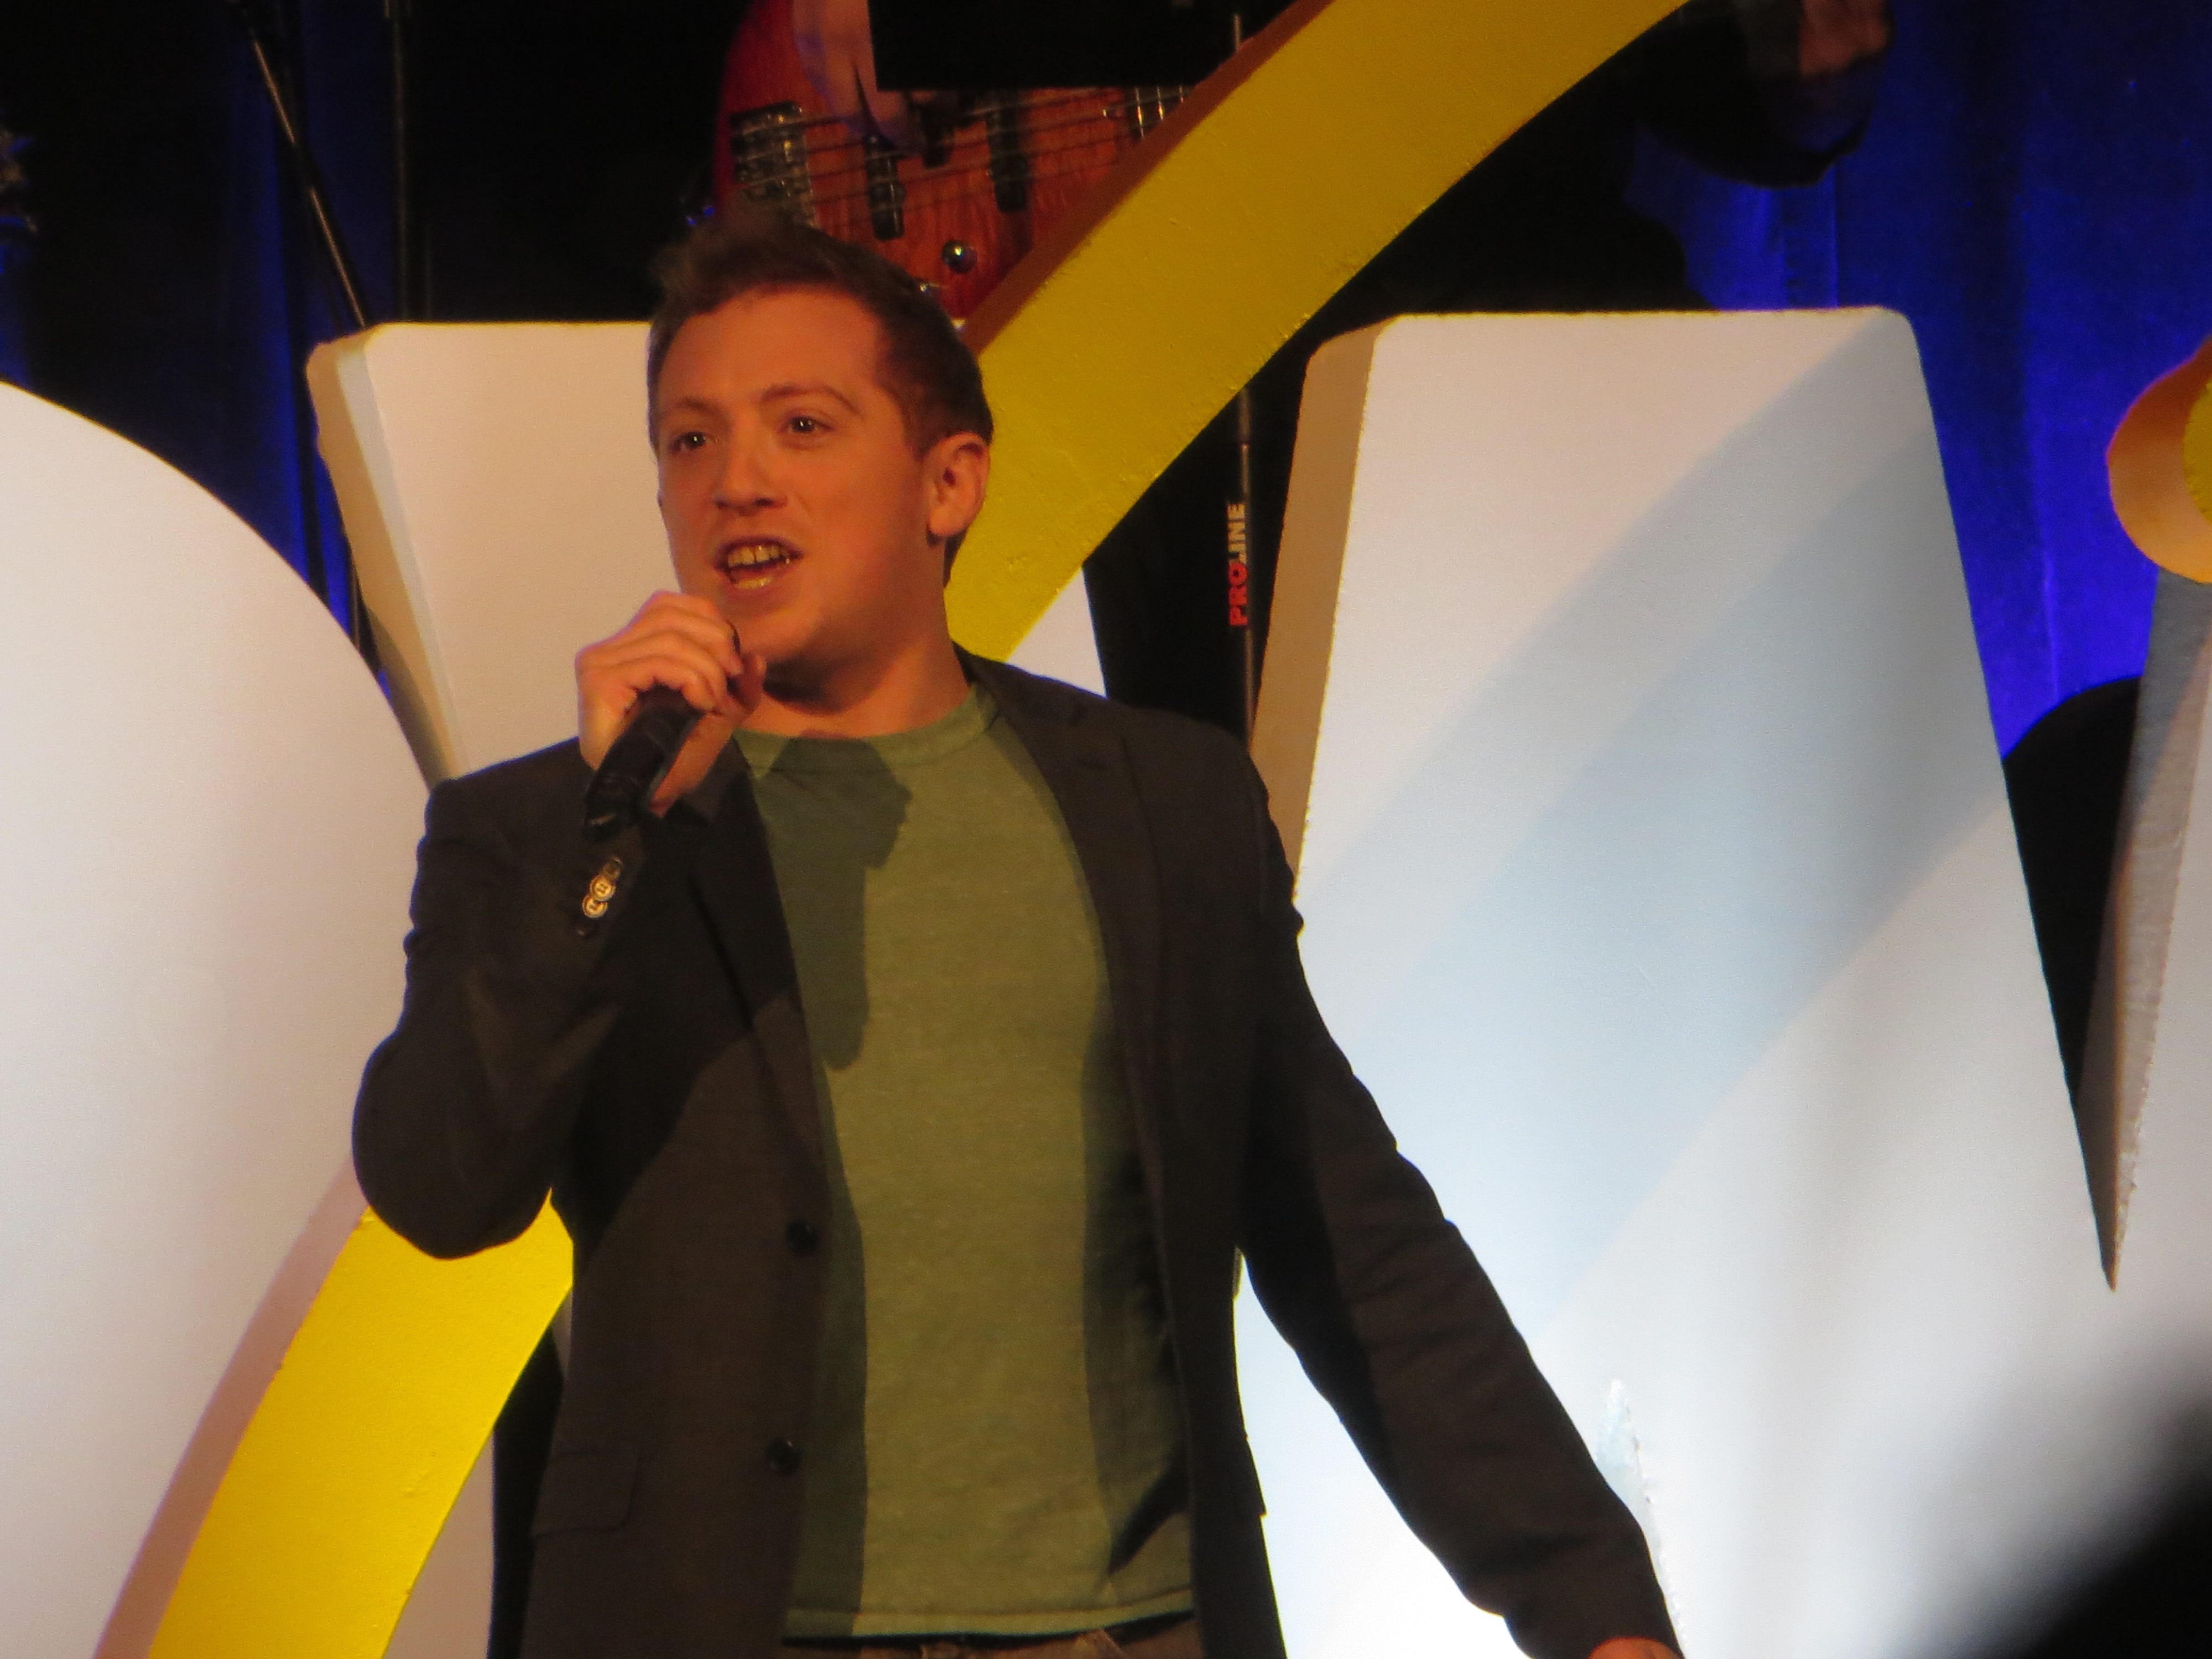 Ethan Slater sings during the opening ceremony at BroadwayCon 2019, held Jan. 11 to 13, 2019, at the New York Hilton Midtown in Manhattan.